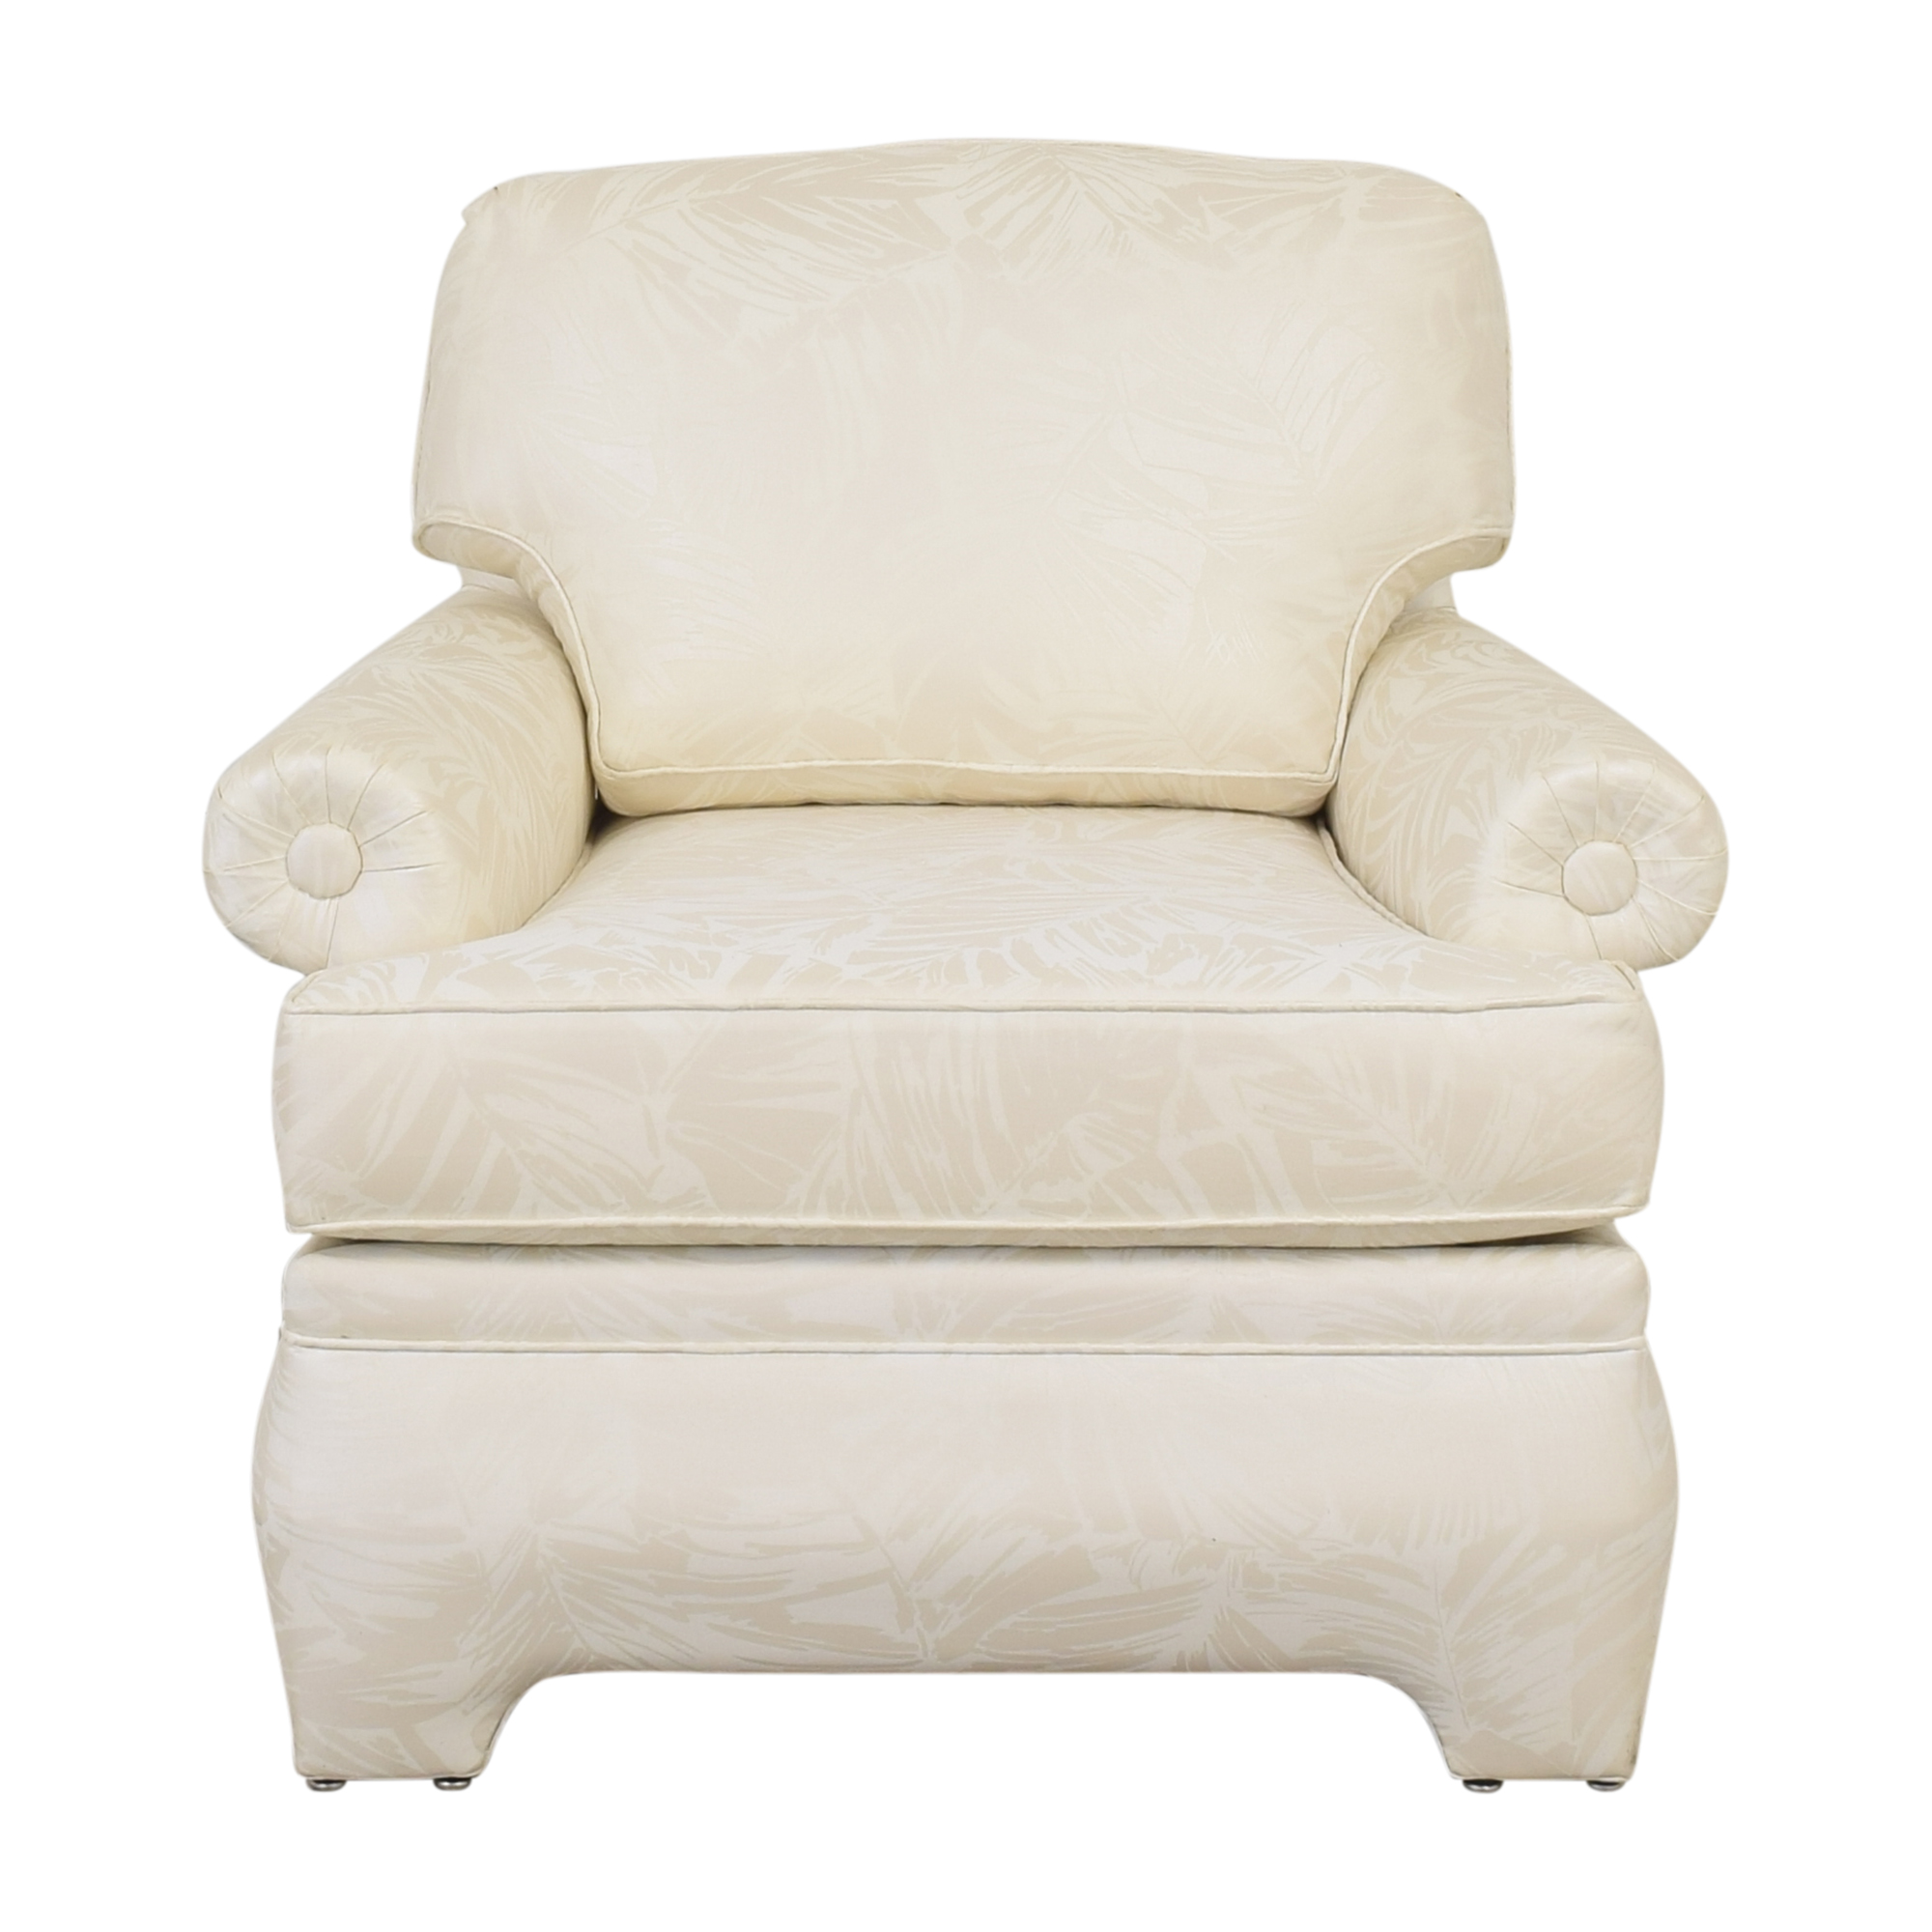 The Sofa Factory Accent Chair second hand